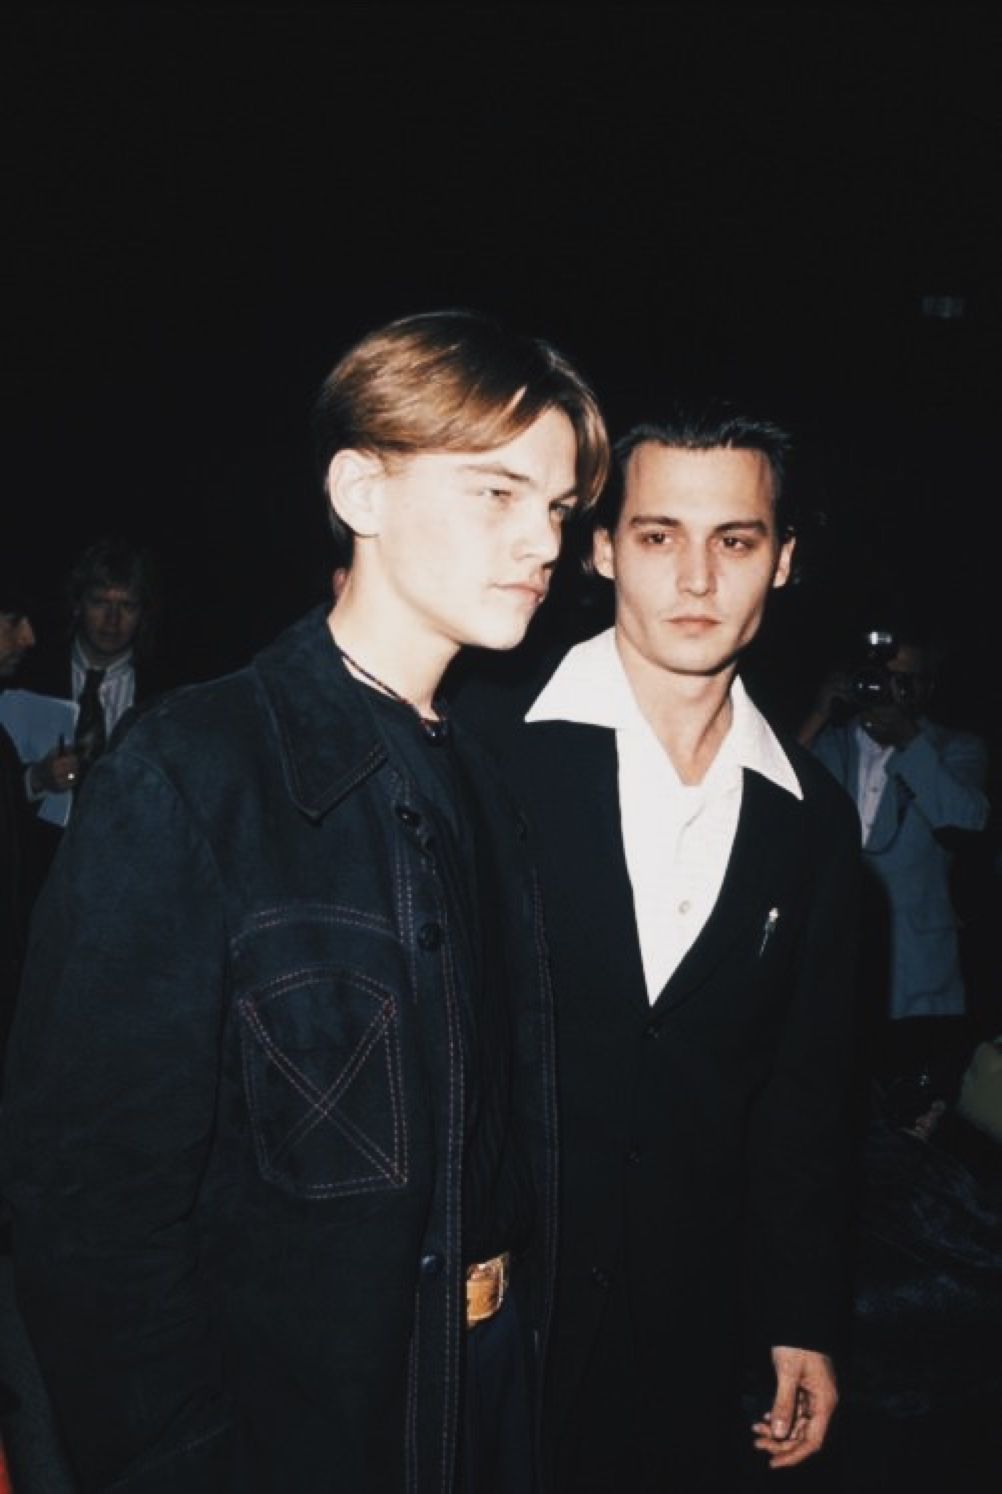 Leonardo Dicaprio And Johnny Depp Admirable People In